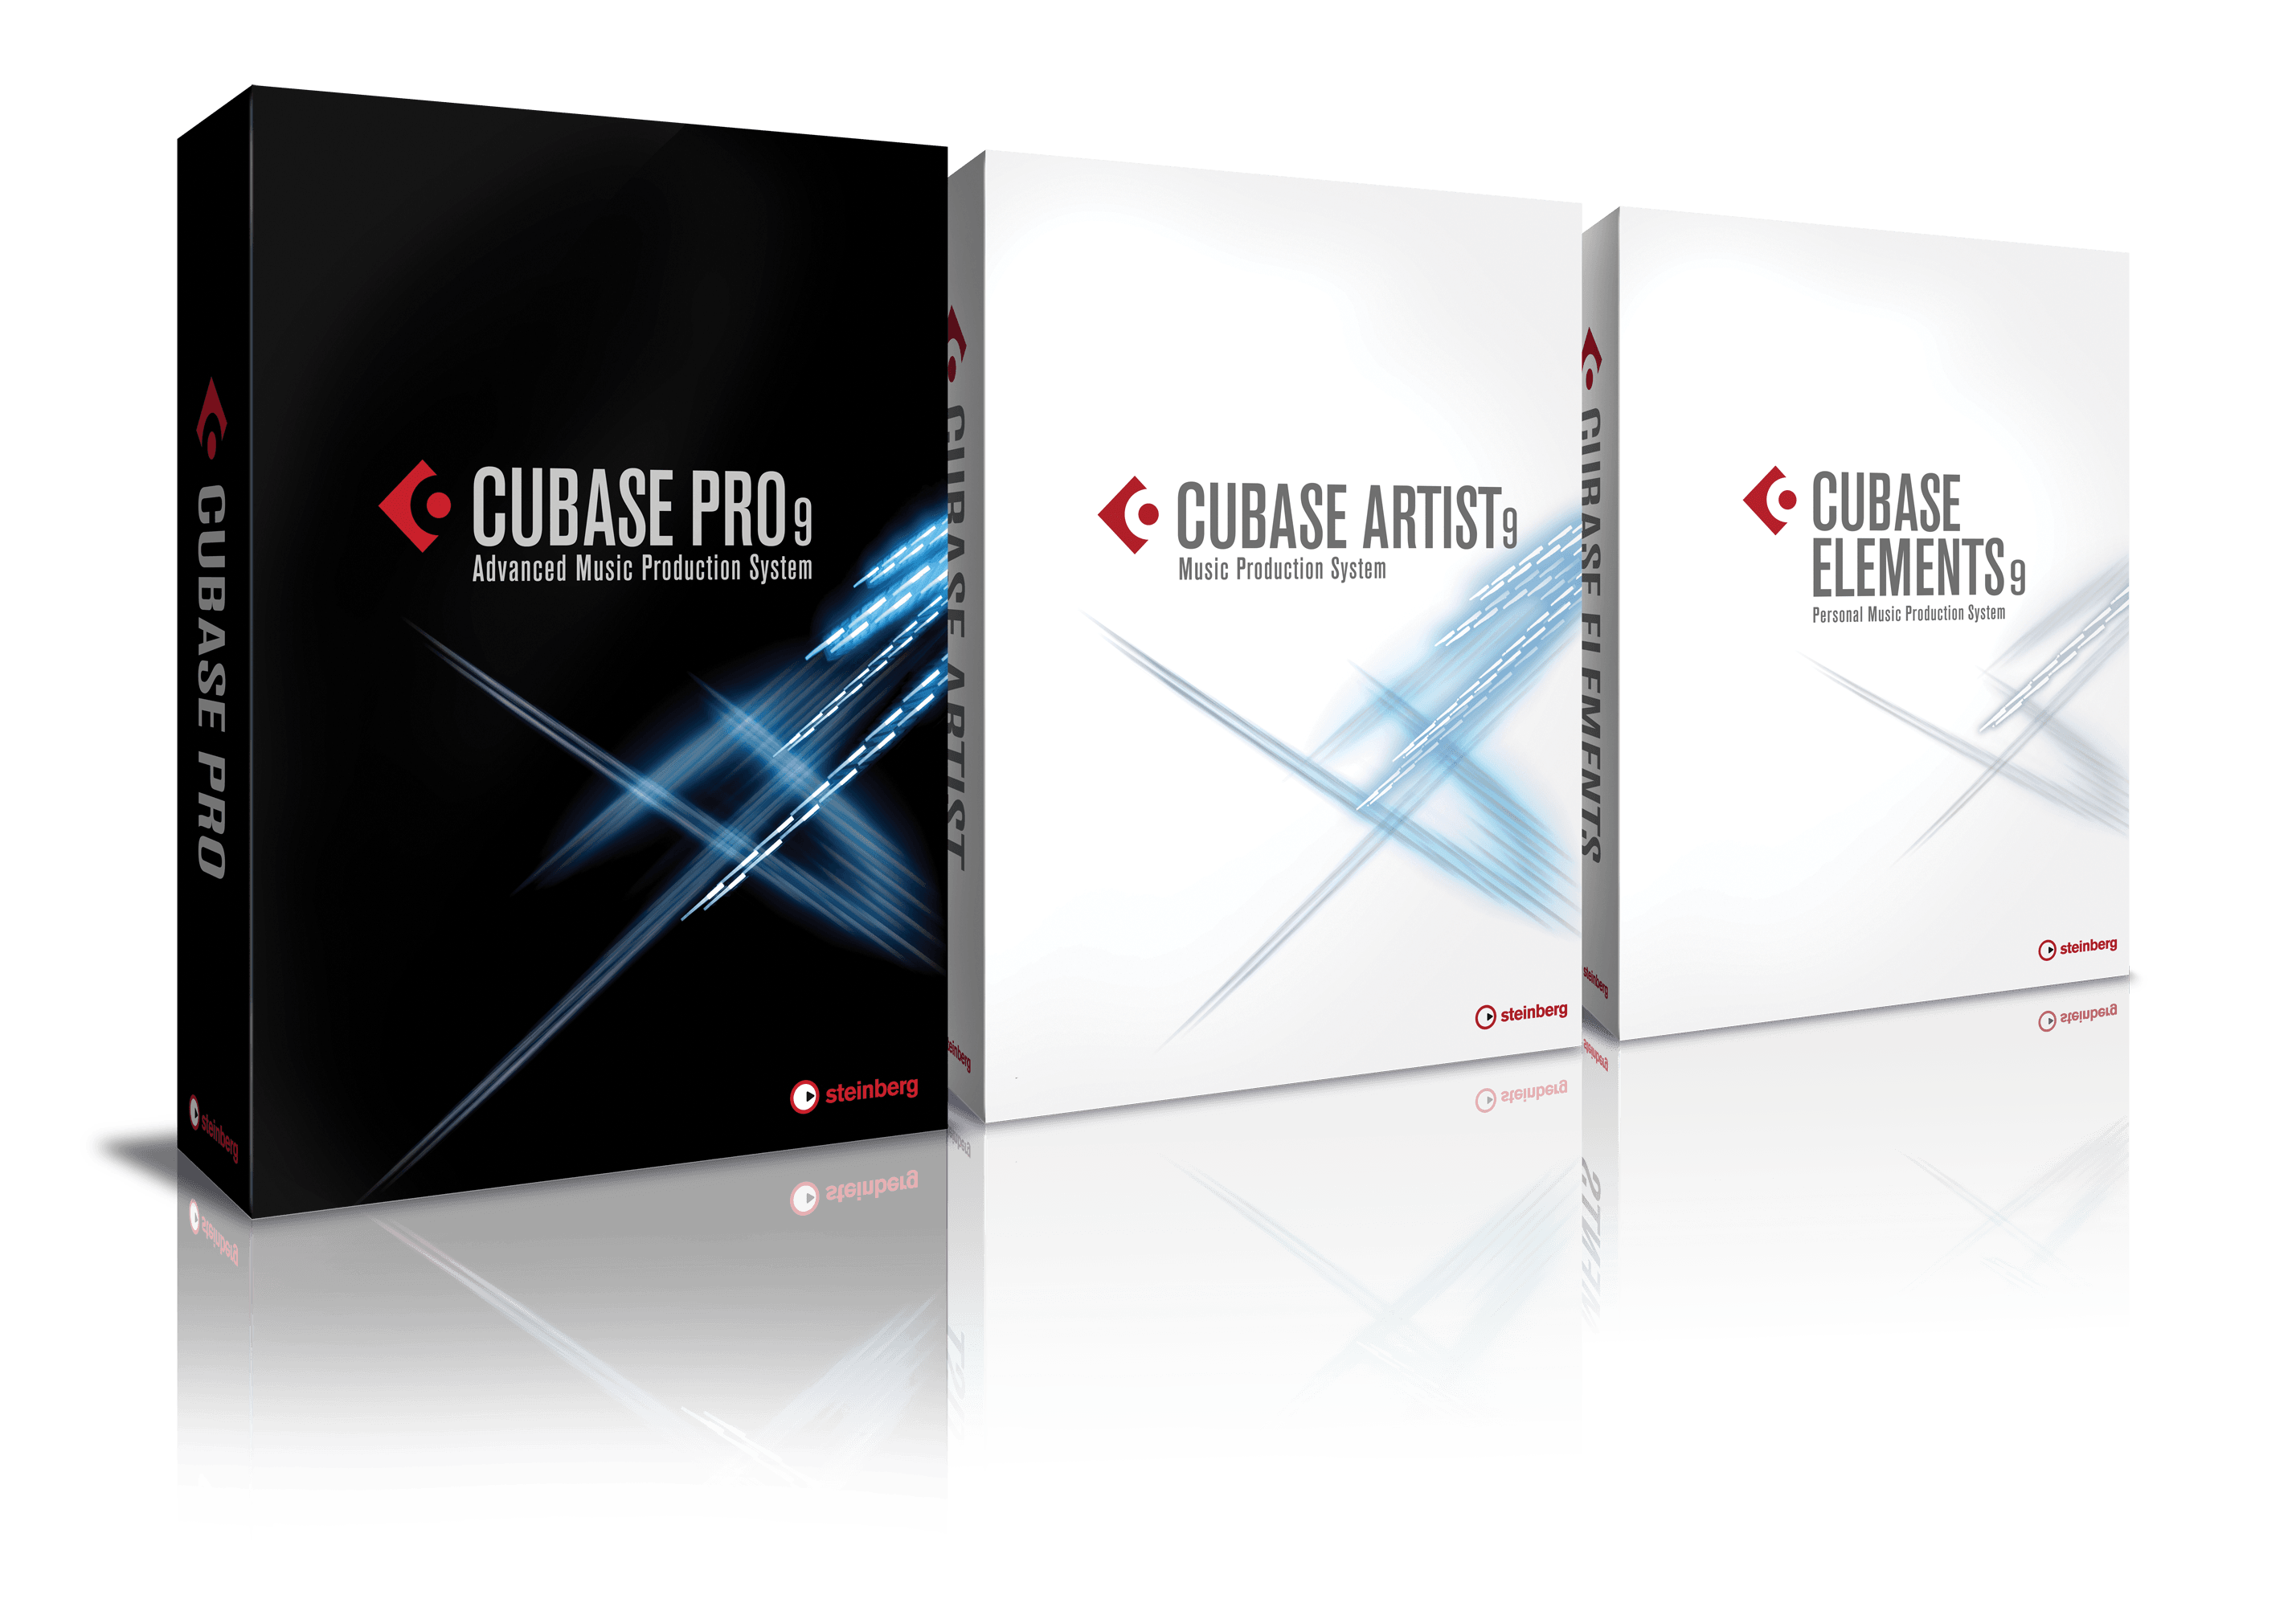 Steinberg Cubase 9 Review - An exceptional DAW